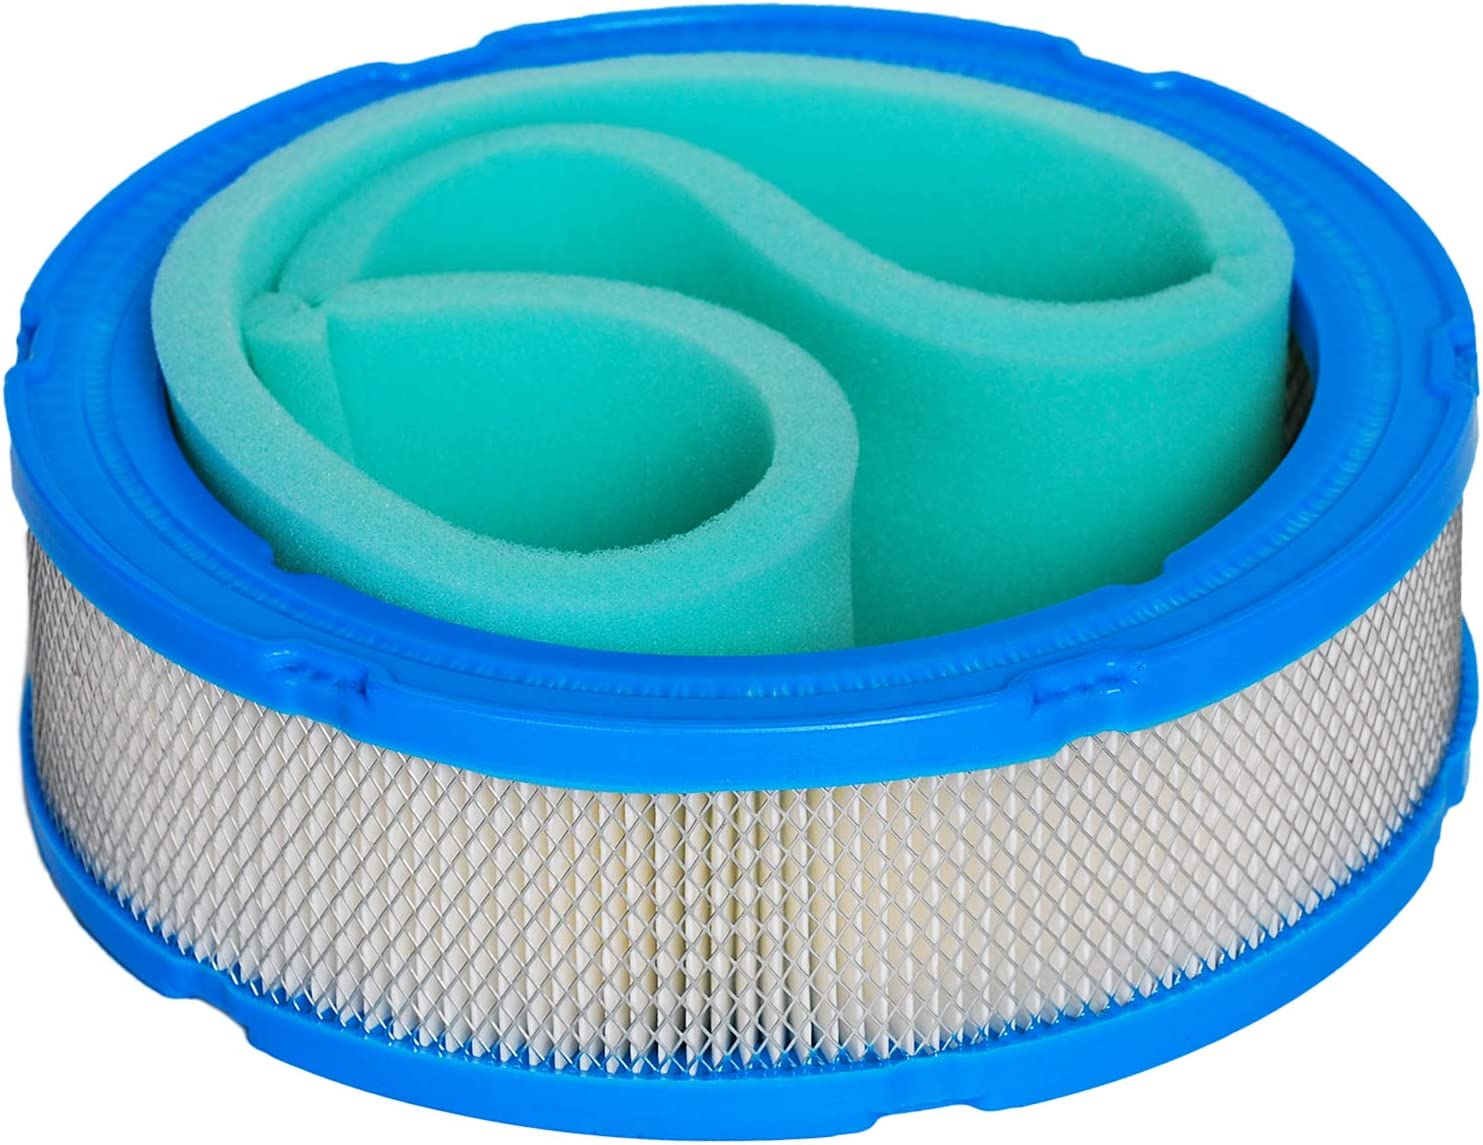 HIFROM Air Filter Cartridge Pre-Cleaner/Pre Filter Replace for Briggs & Stratton 394018 392642 394018S 5050H 5050B 4135 421400 402400 Vanguard V-Twin 12.5-20hp